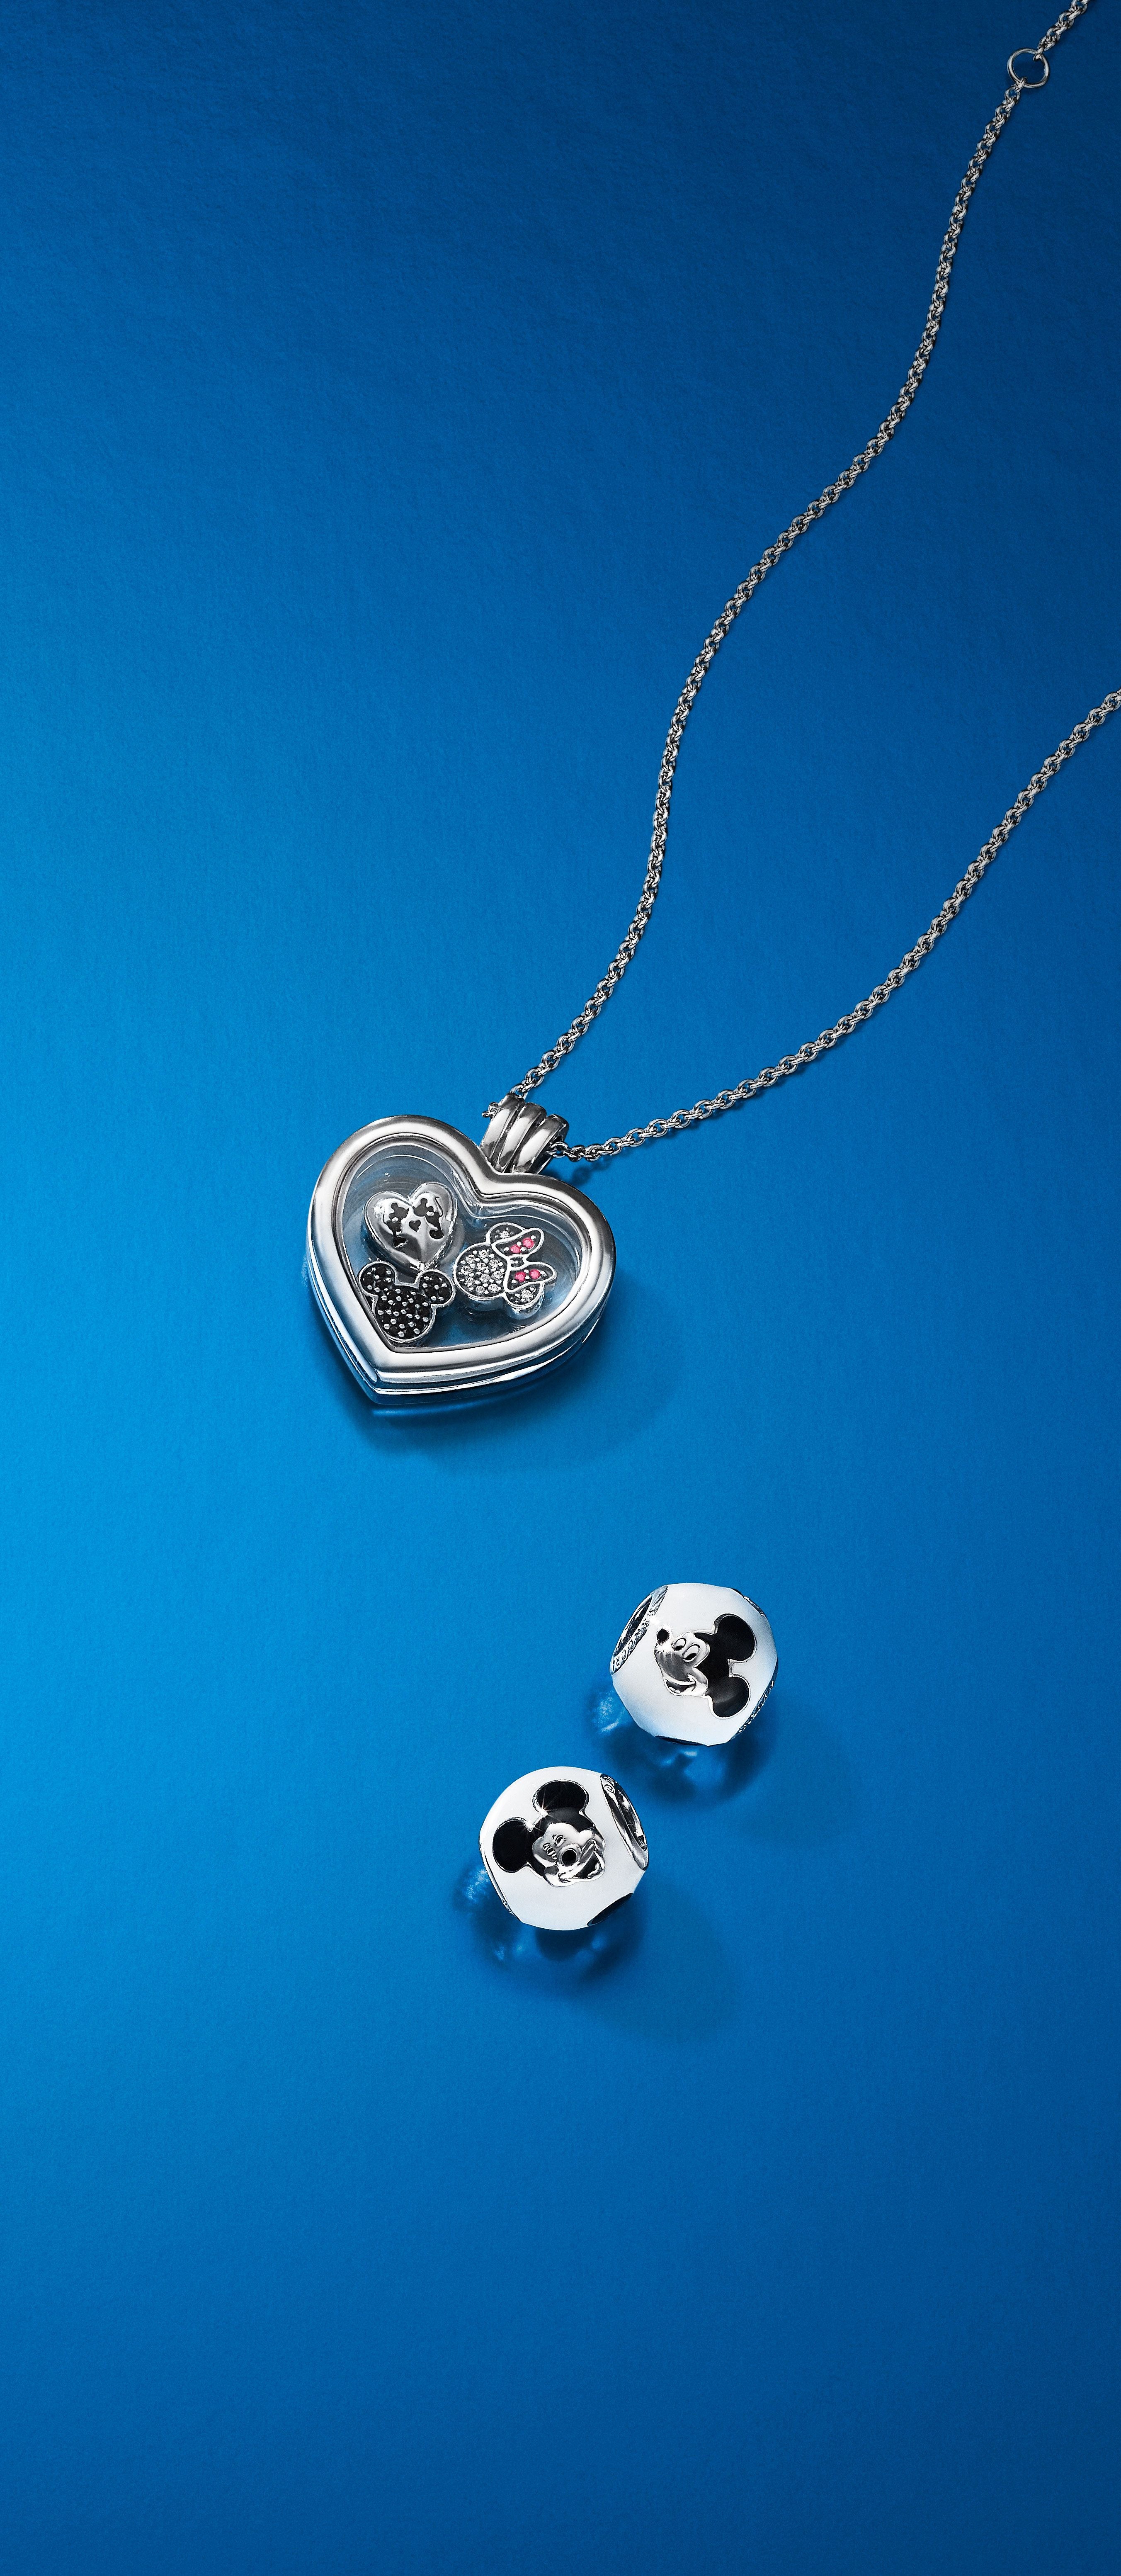 20bba1749 Put a magical spin on your floating locket with new Mickey and Minnie Mouse  petites, or tell your story with intricately crafted charms.